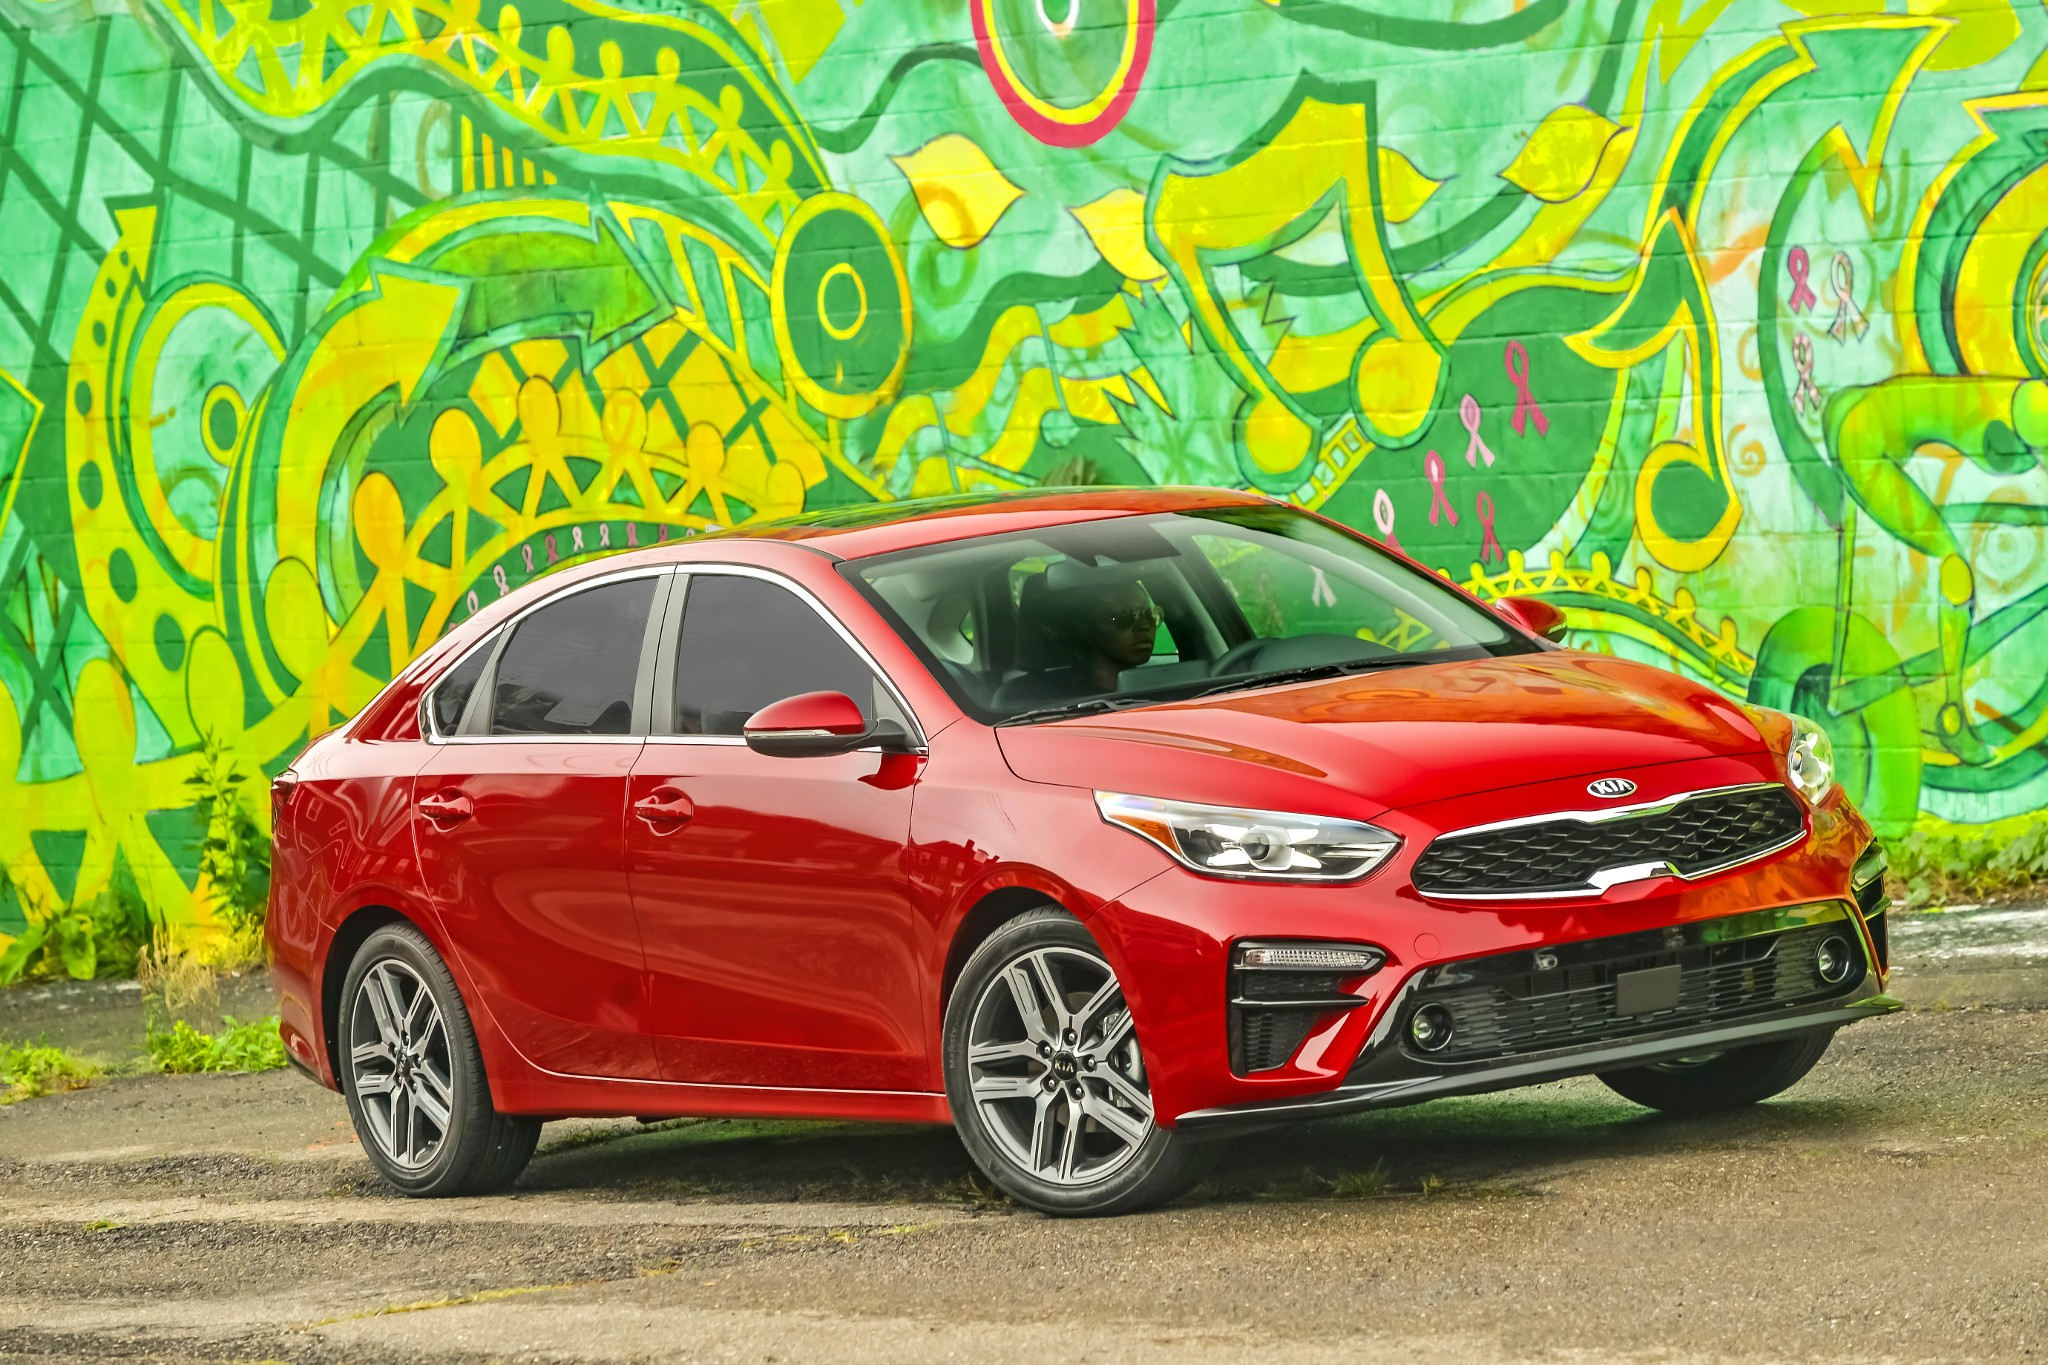 Dodge, Kia Are Most Reliable Car Brands in First 90 Days, While Tesla Perturbs